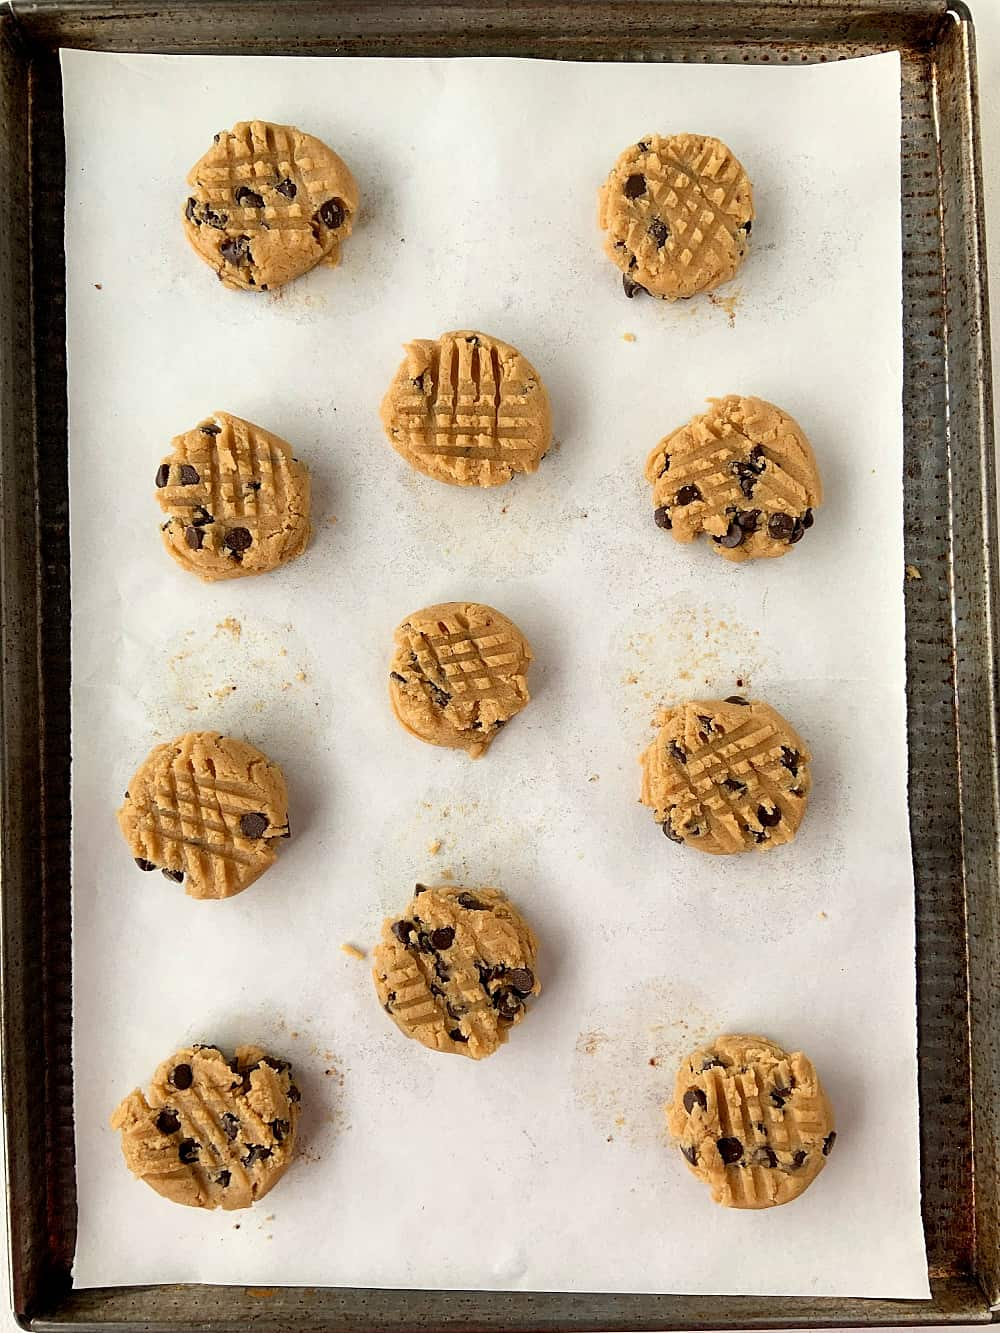 Metal cookie tray with unbaked almond butter cookies with chocolate chips on parchment paper.